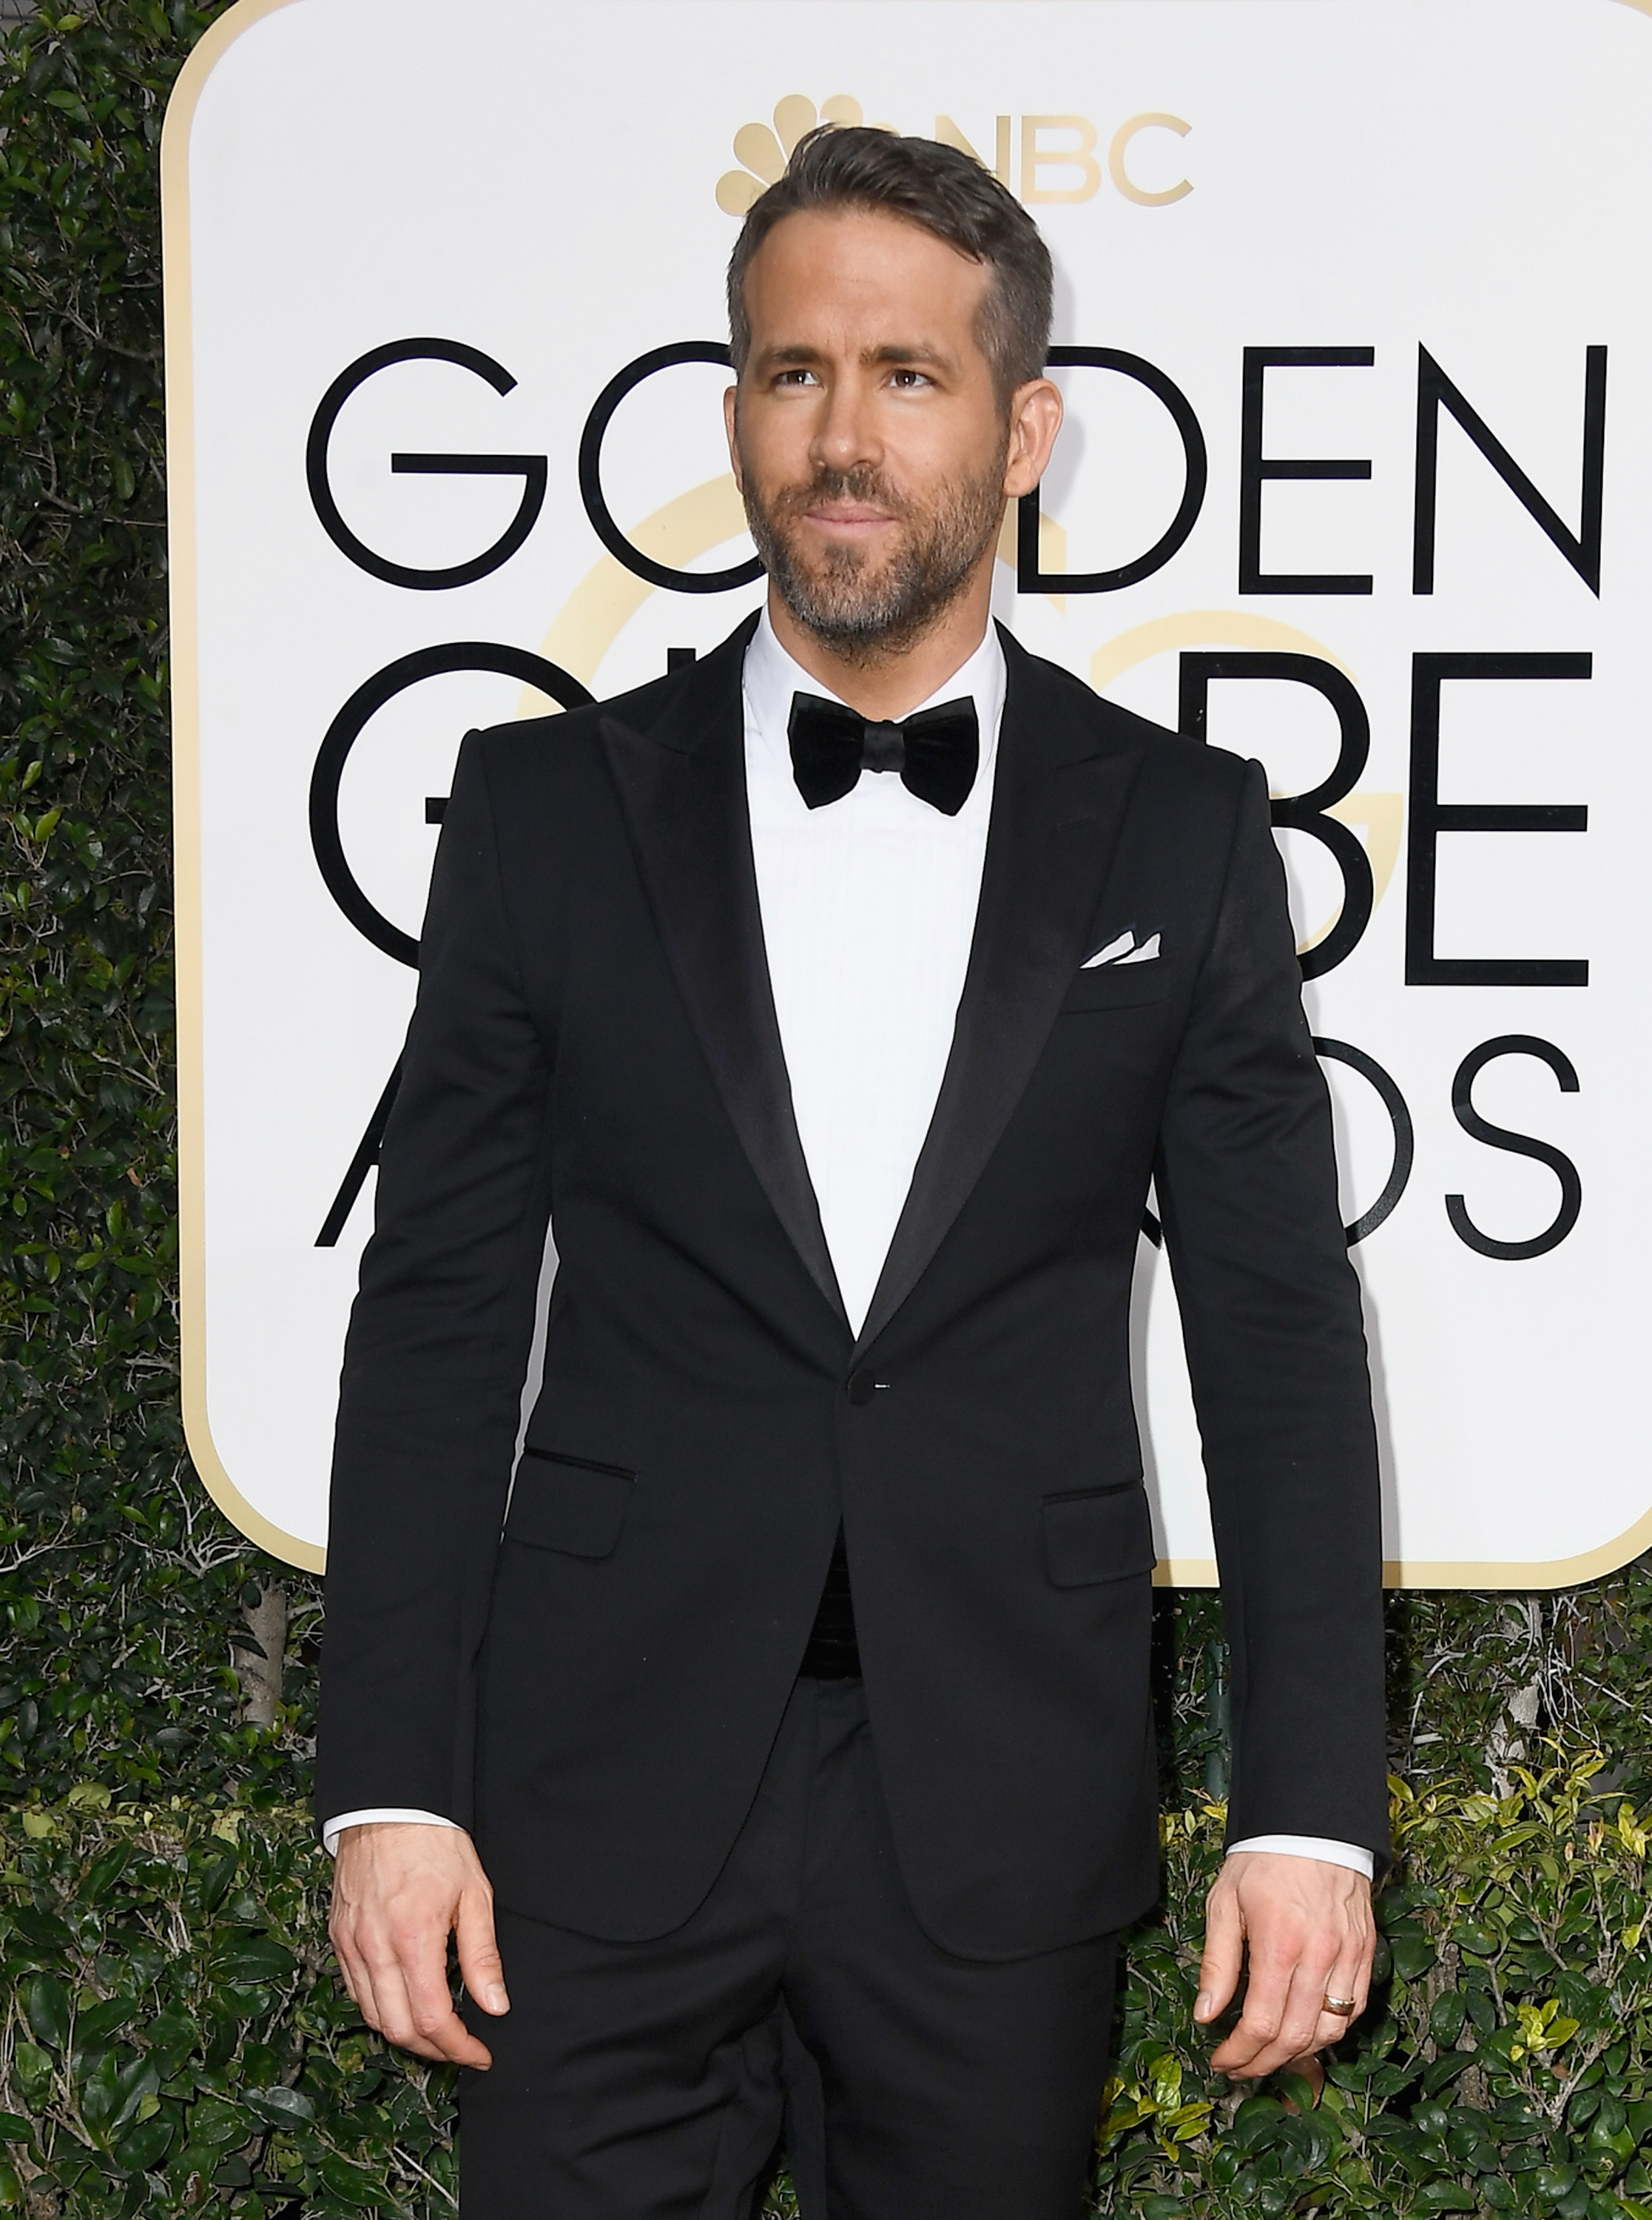 Actor Ryan Reynolds attends the 74th Annual Golden Globe Awards at The Beverly Hilton Hotel in Beverly Hills, California  on January 8, 2017.